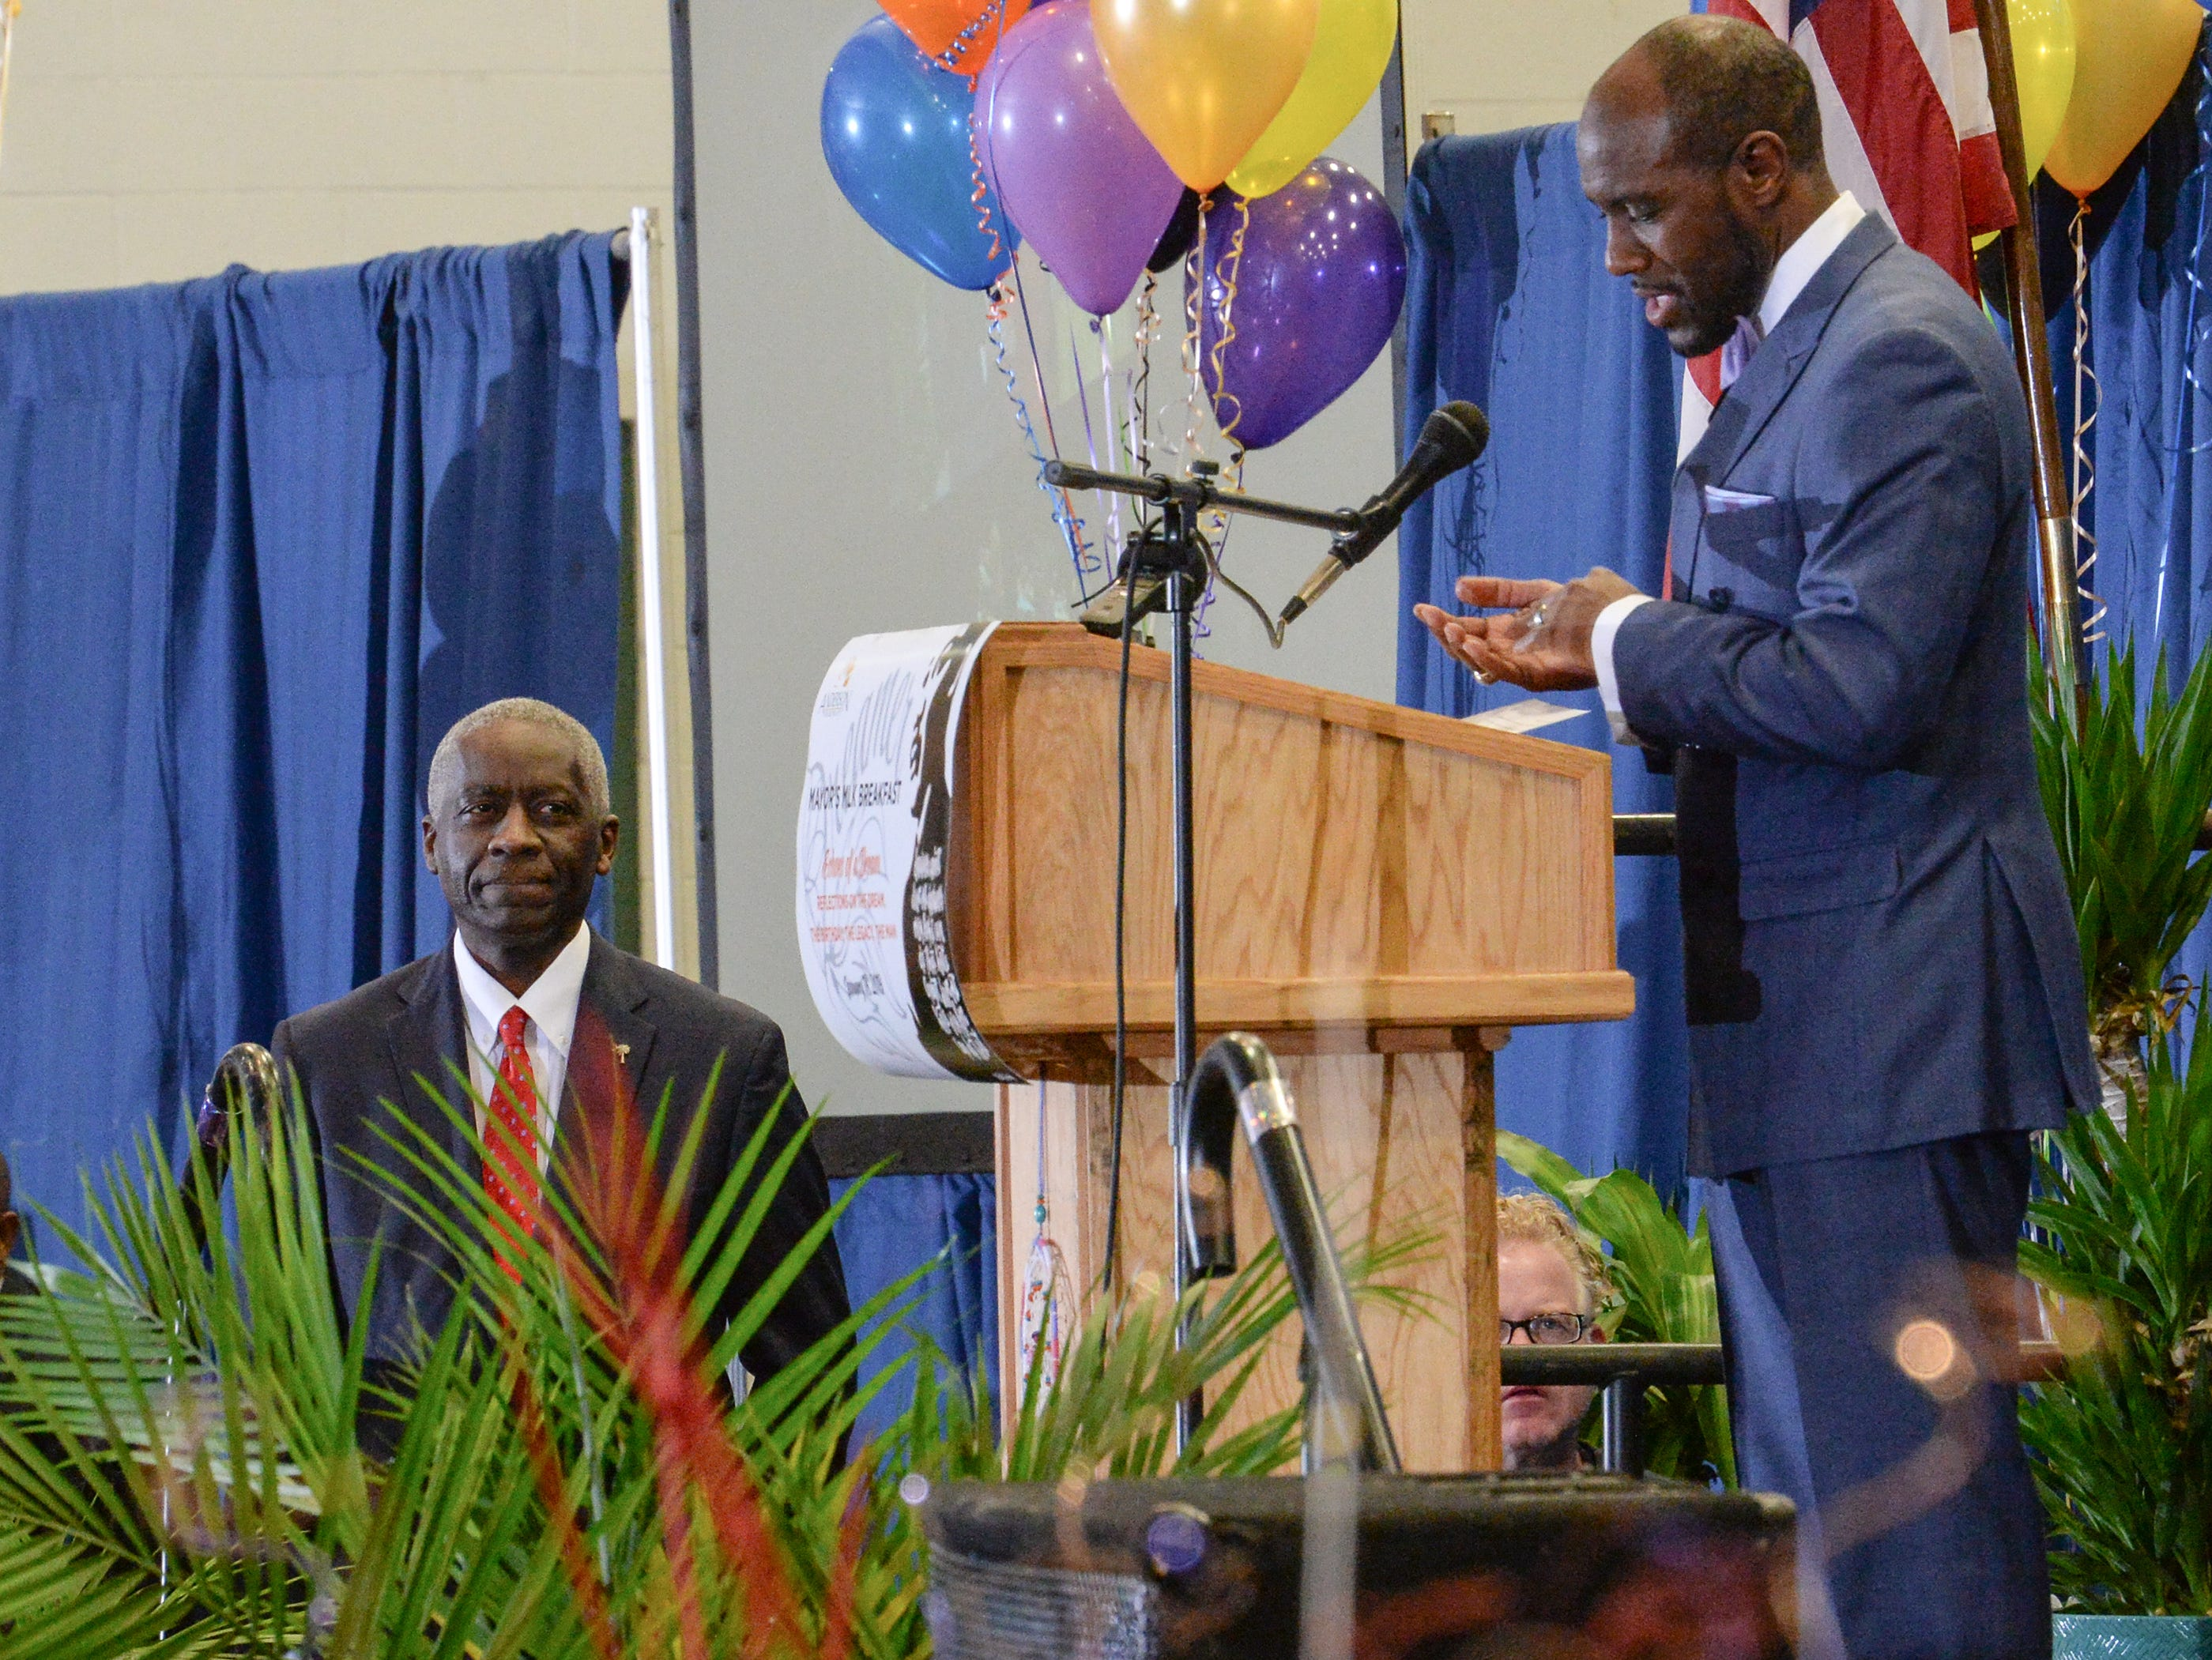 Dr. James Noble, right, introduces Mayor Terence Roberts during the Mayor's Martin Luther King Jr Breakfast in the Anderson Civic Center Friday, January 18, 2019.